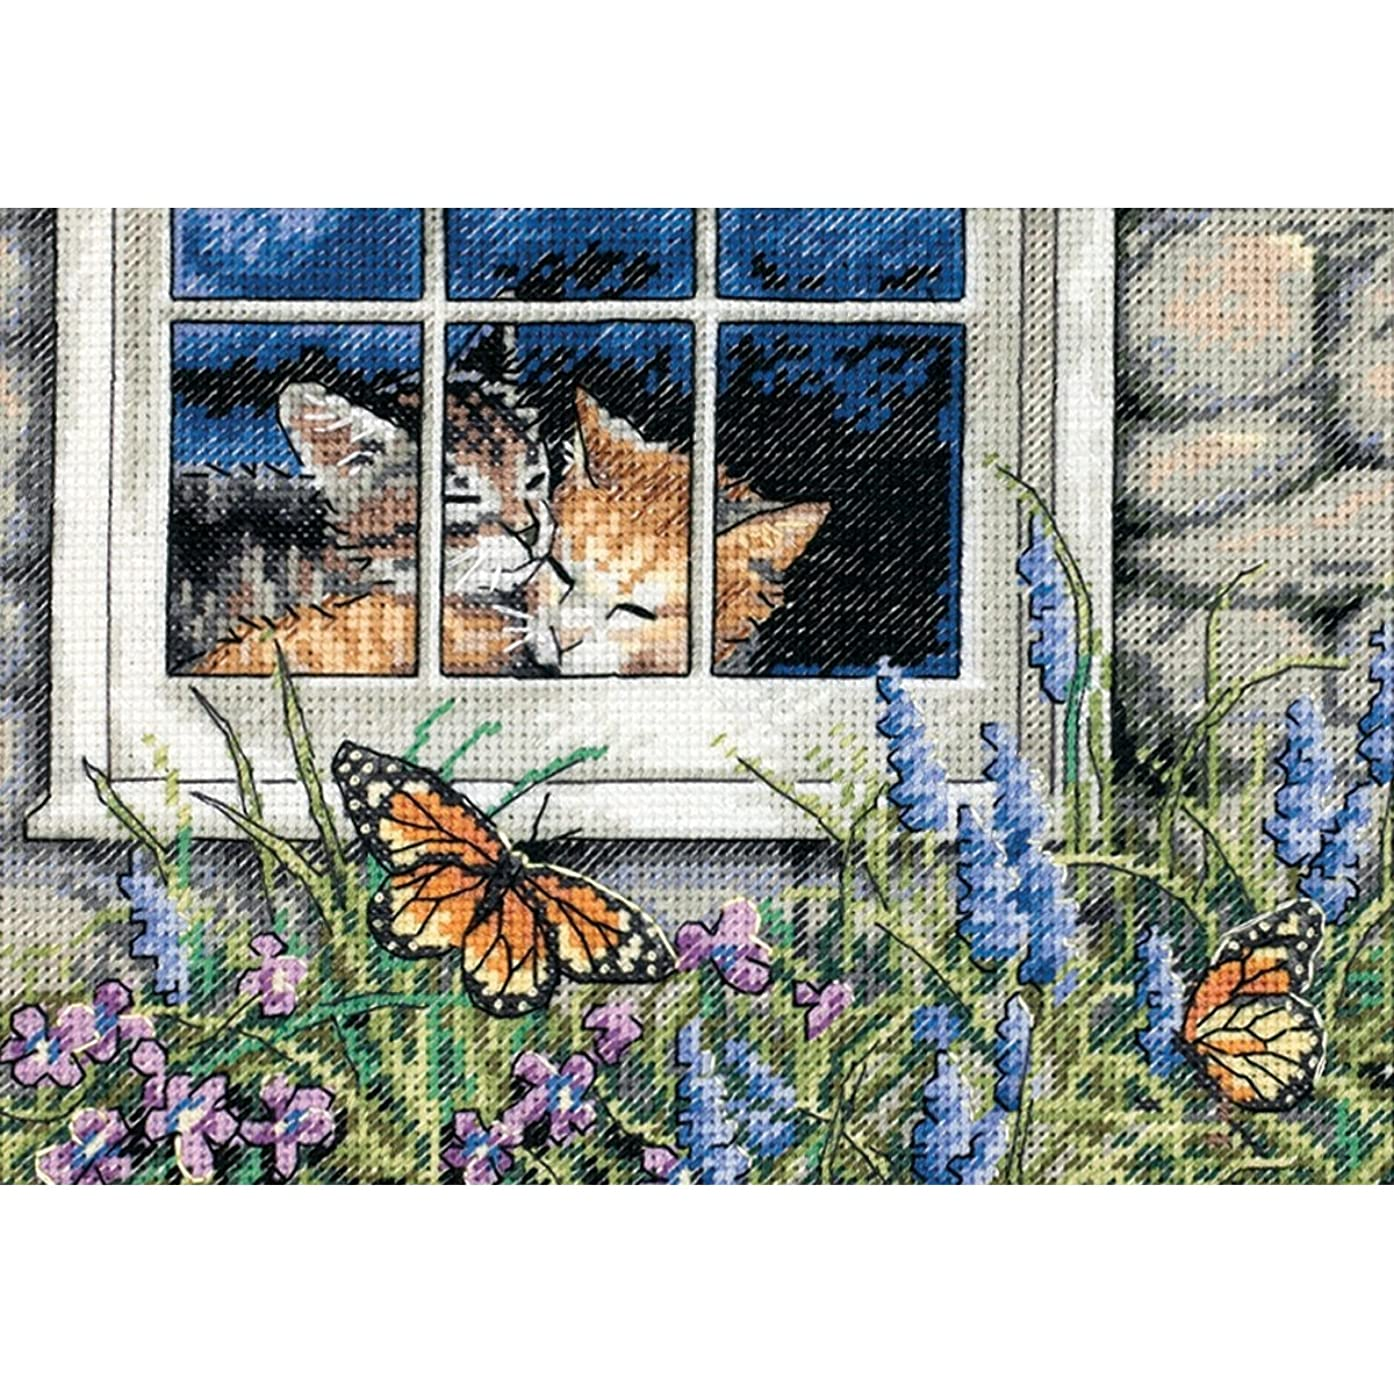 Dimensions Gold Collection Petite Feline Love Counted Cross Stitch Kit: 7x5 18 Count